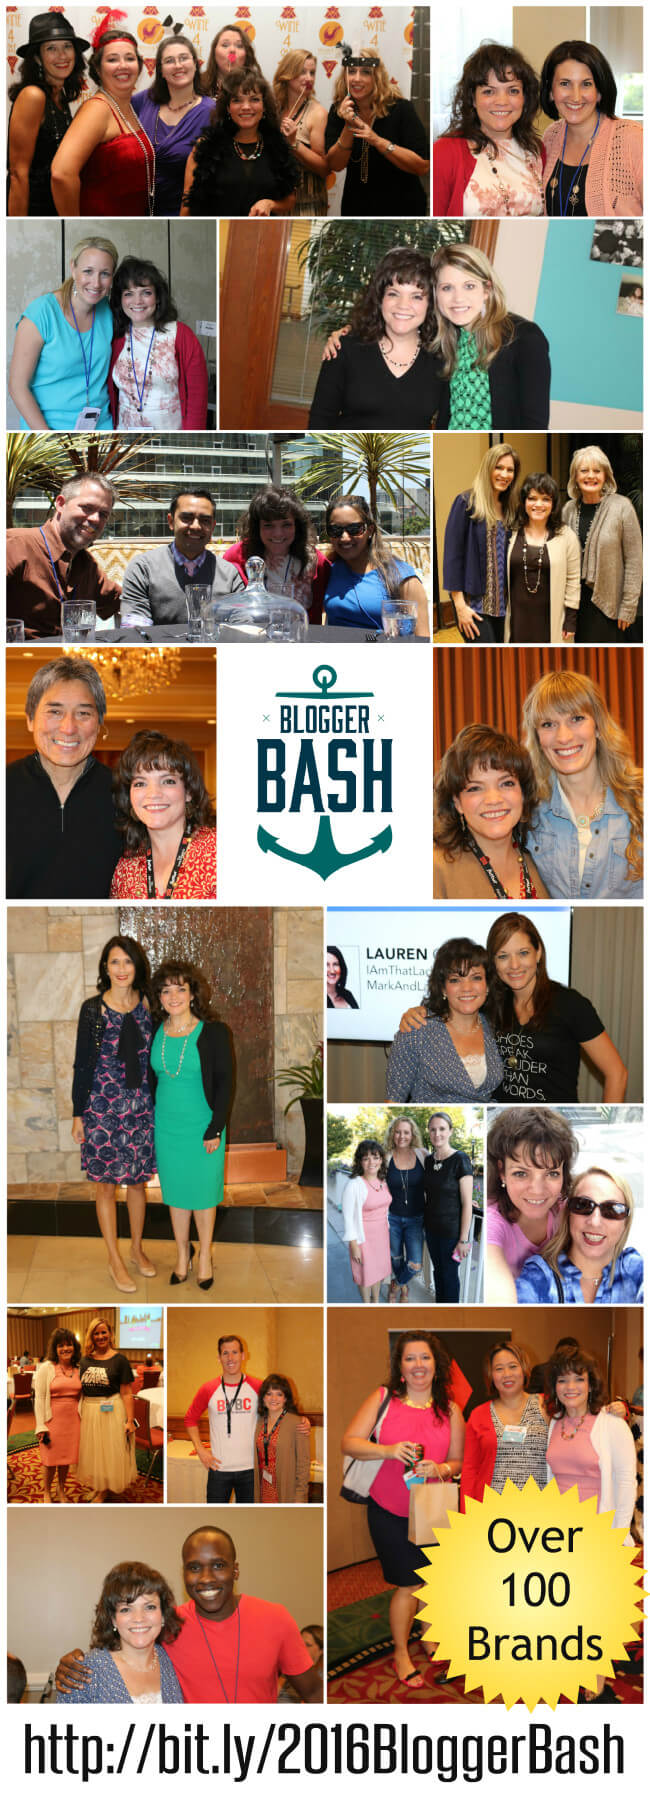 Over 100 Brands at Blogger Bash in NYV July 13 and 14